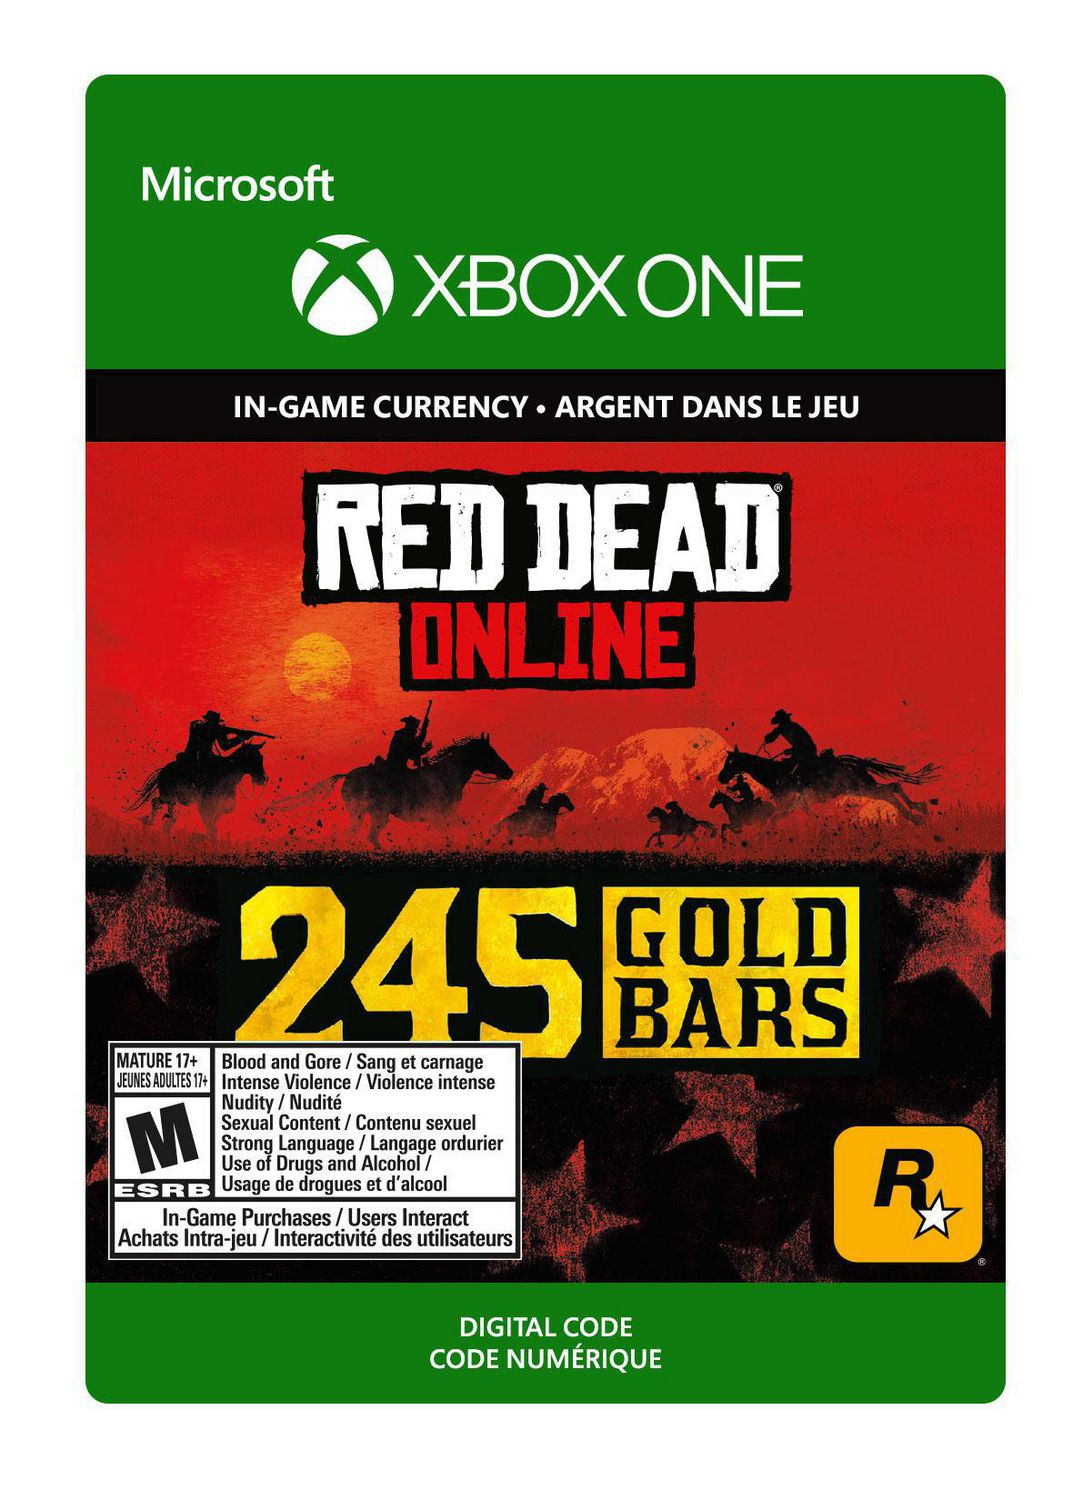 Xbox One Red Dead Redemption 2: 245 Gold Bars [Download